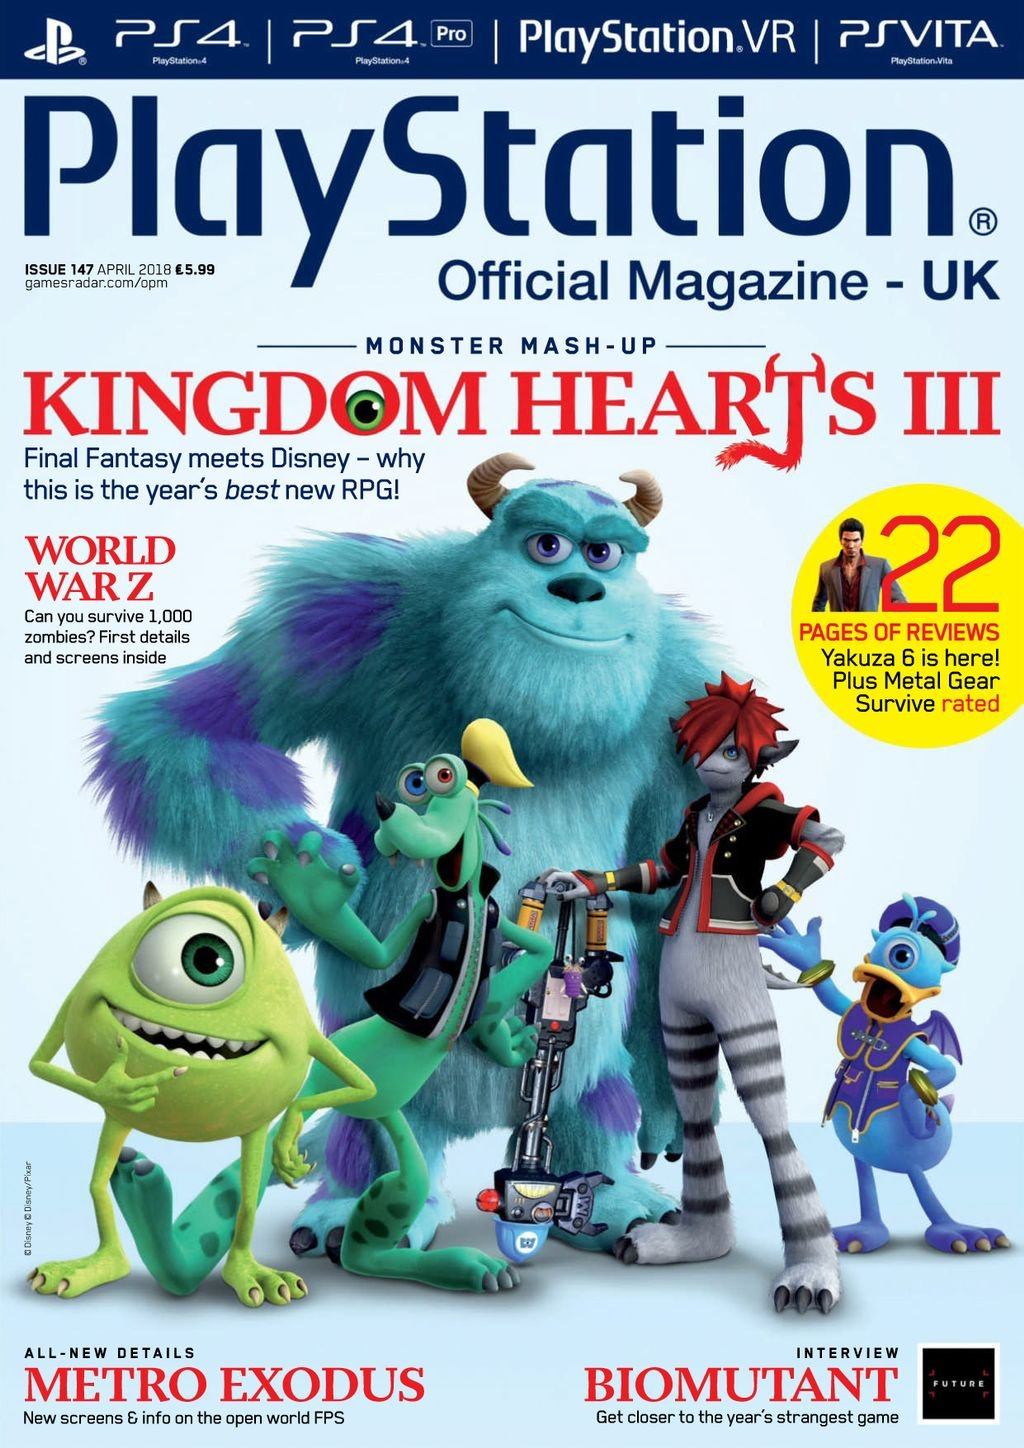 Playstation Official Magazine UK 147 (April 2018)